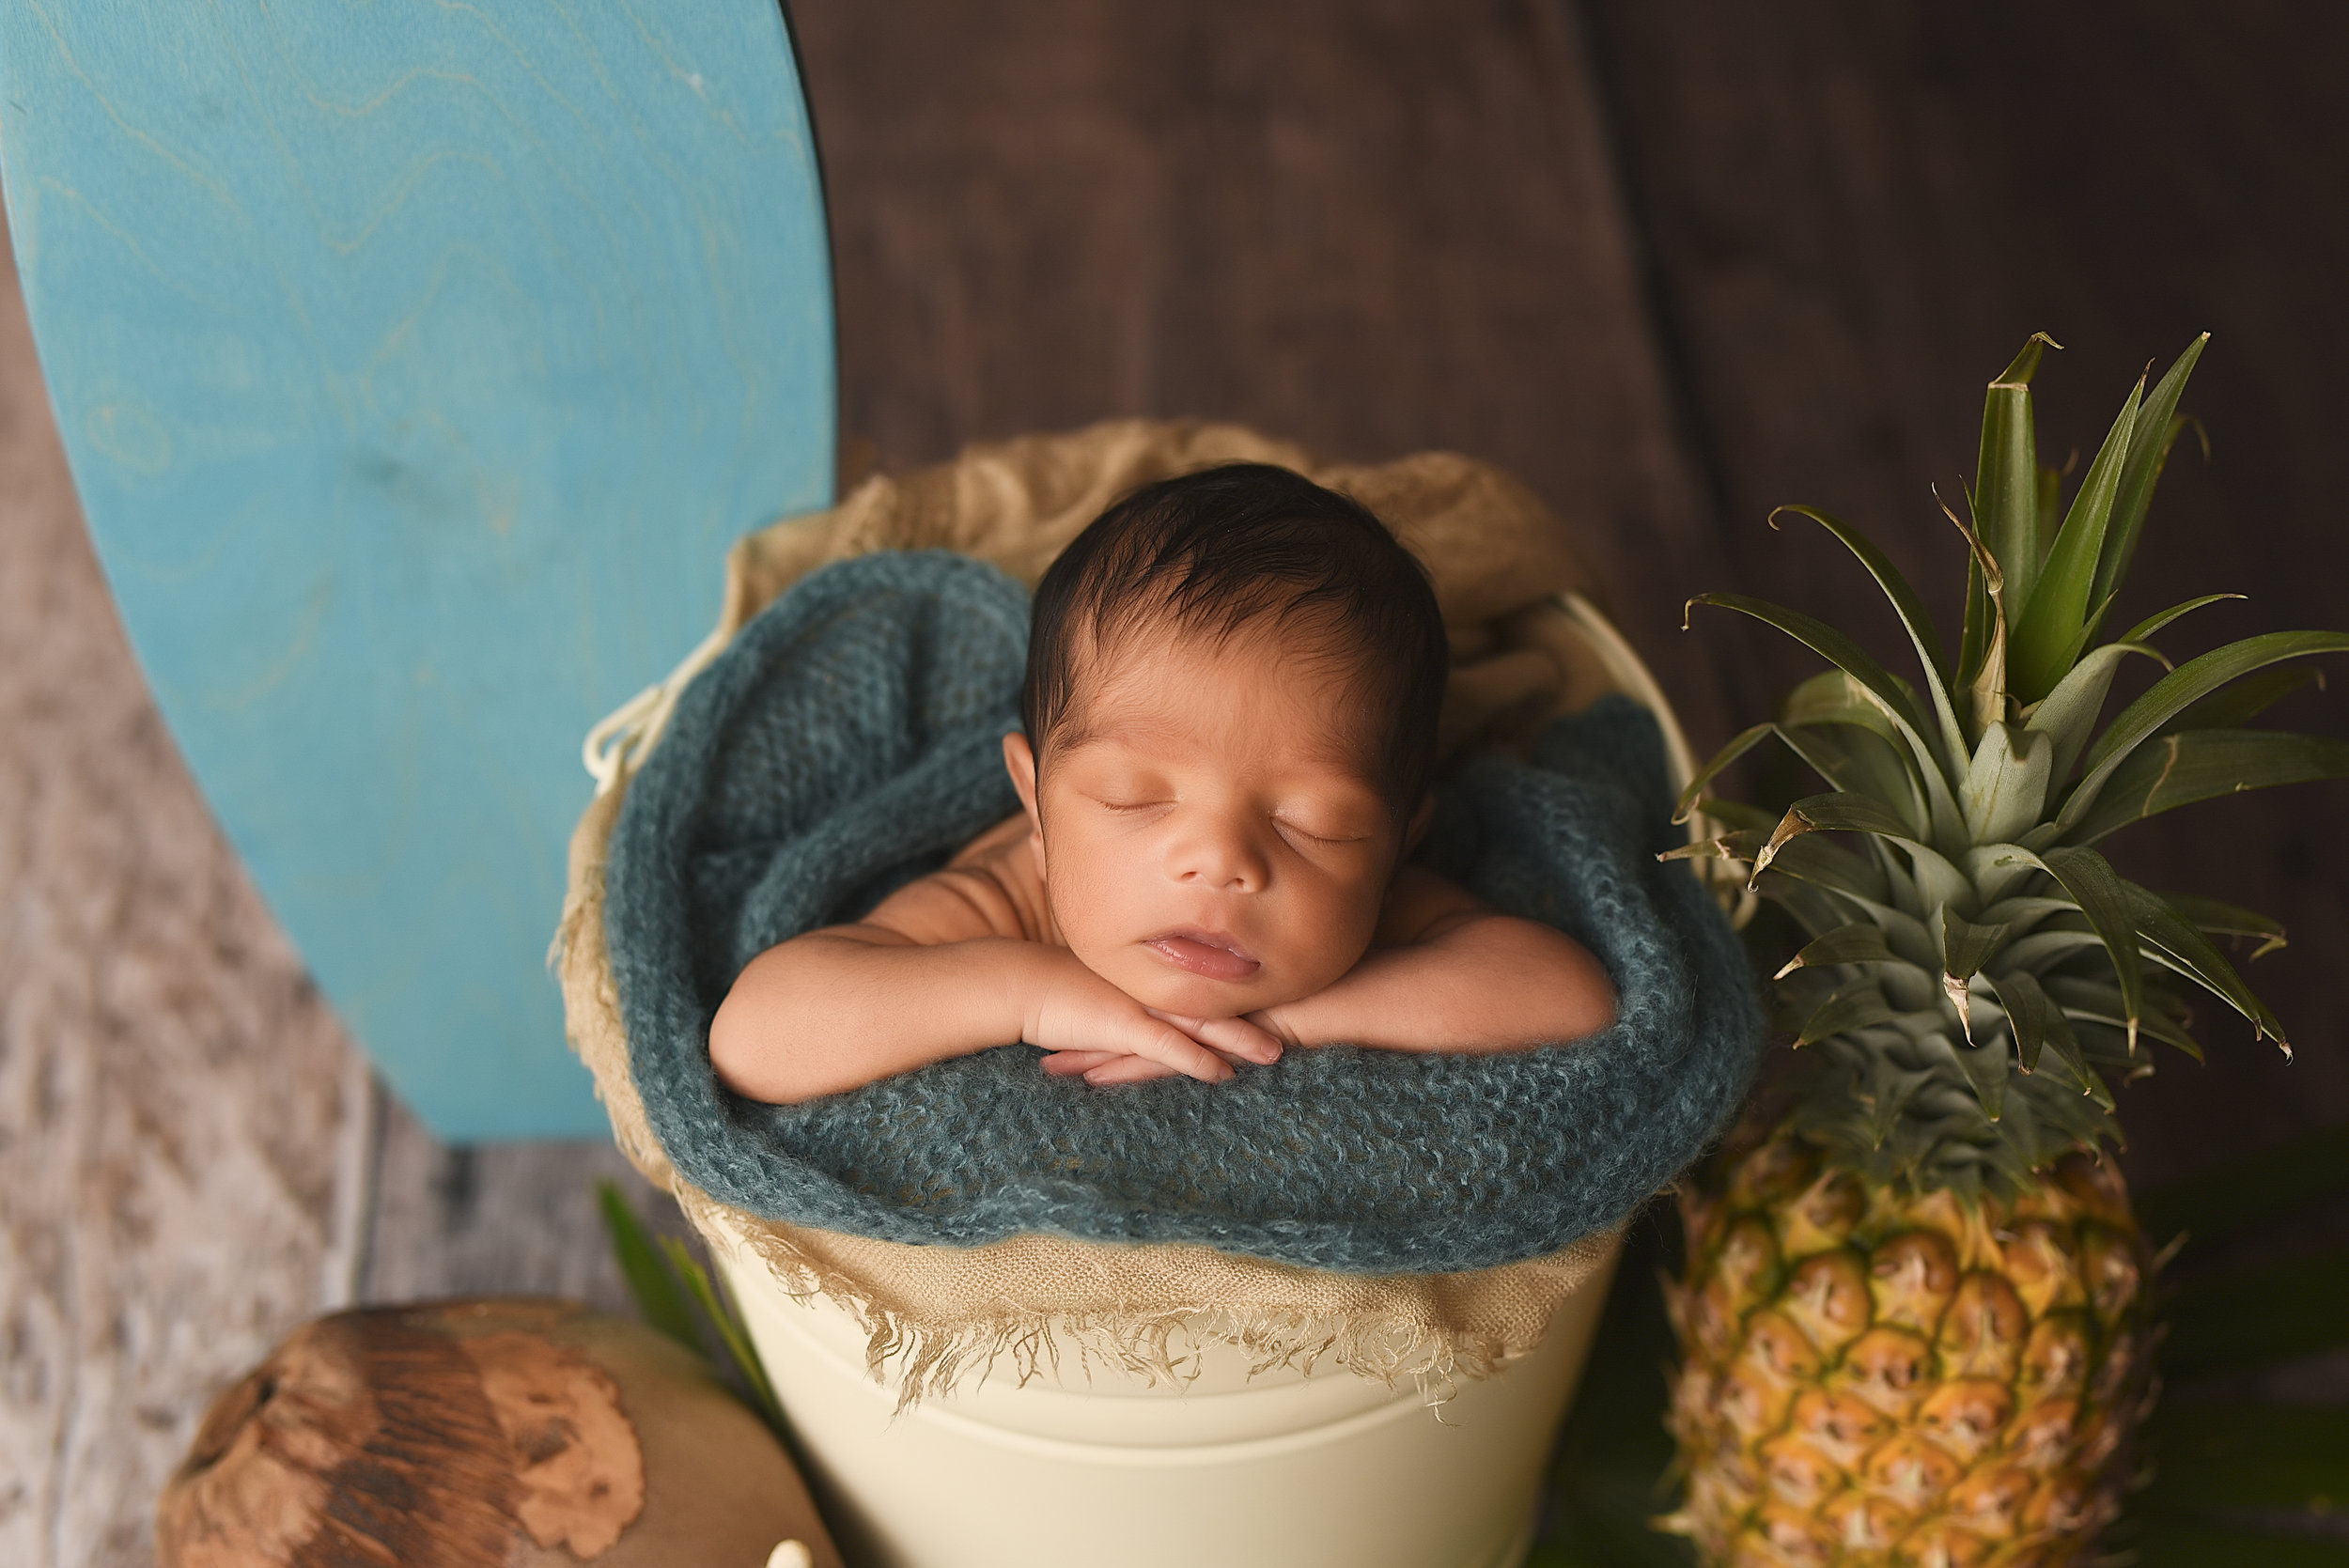 Sarah_Lynn_Photography_Oahu_Newborn_Photographer_Baby_Photos_Sleepy